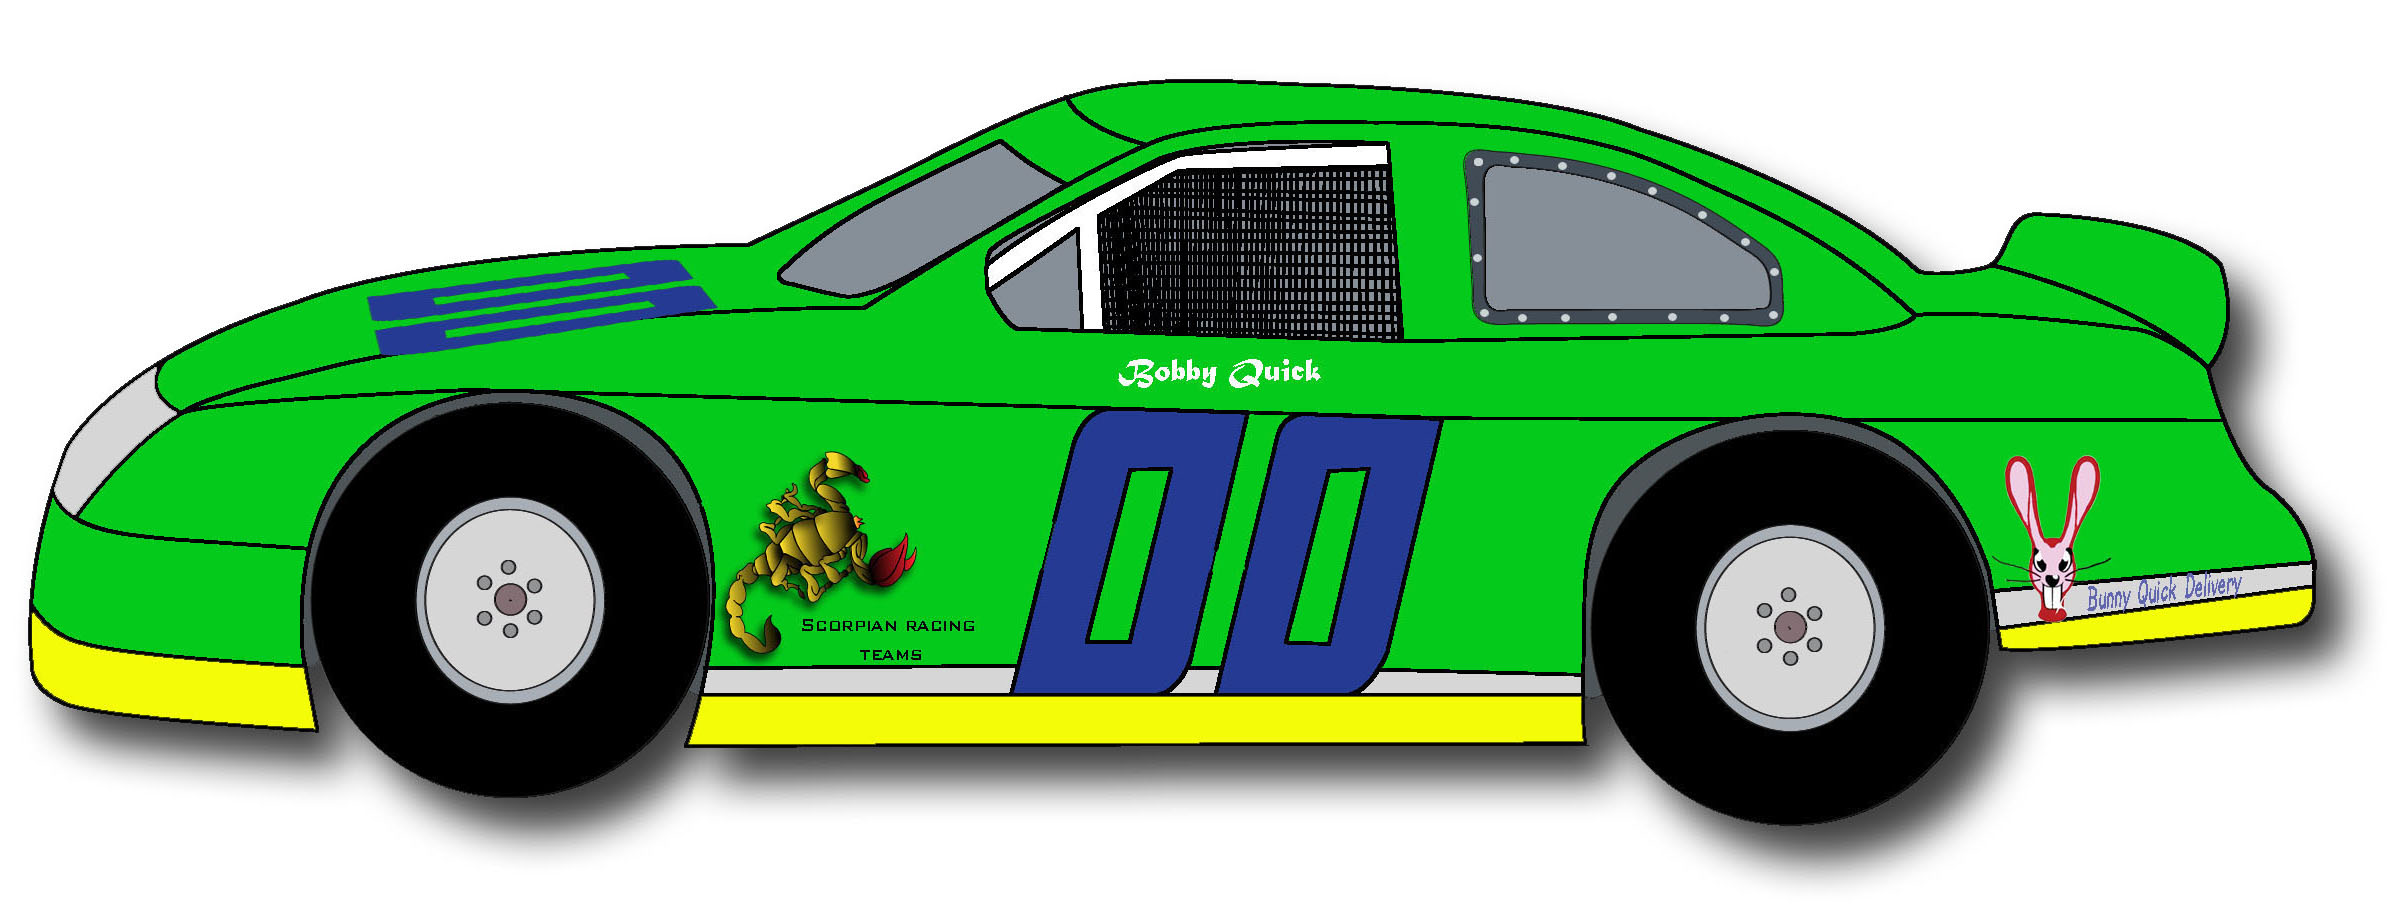 Green clipart race car. Sports and transport stock